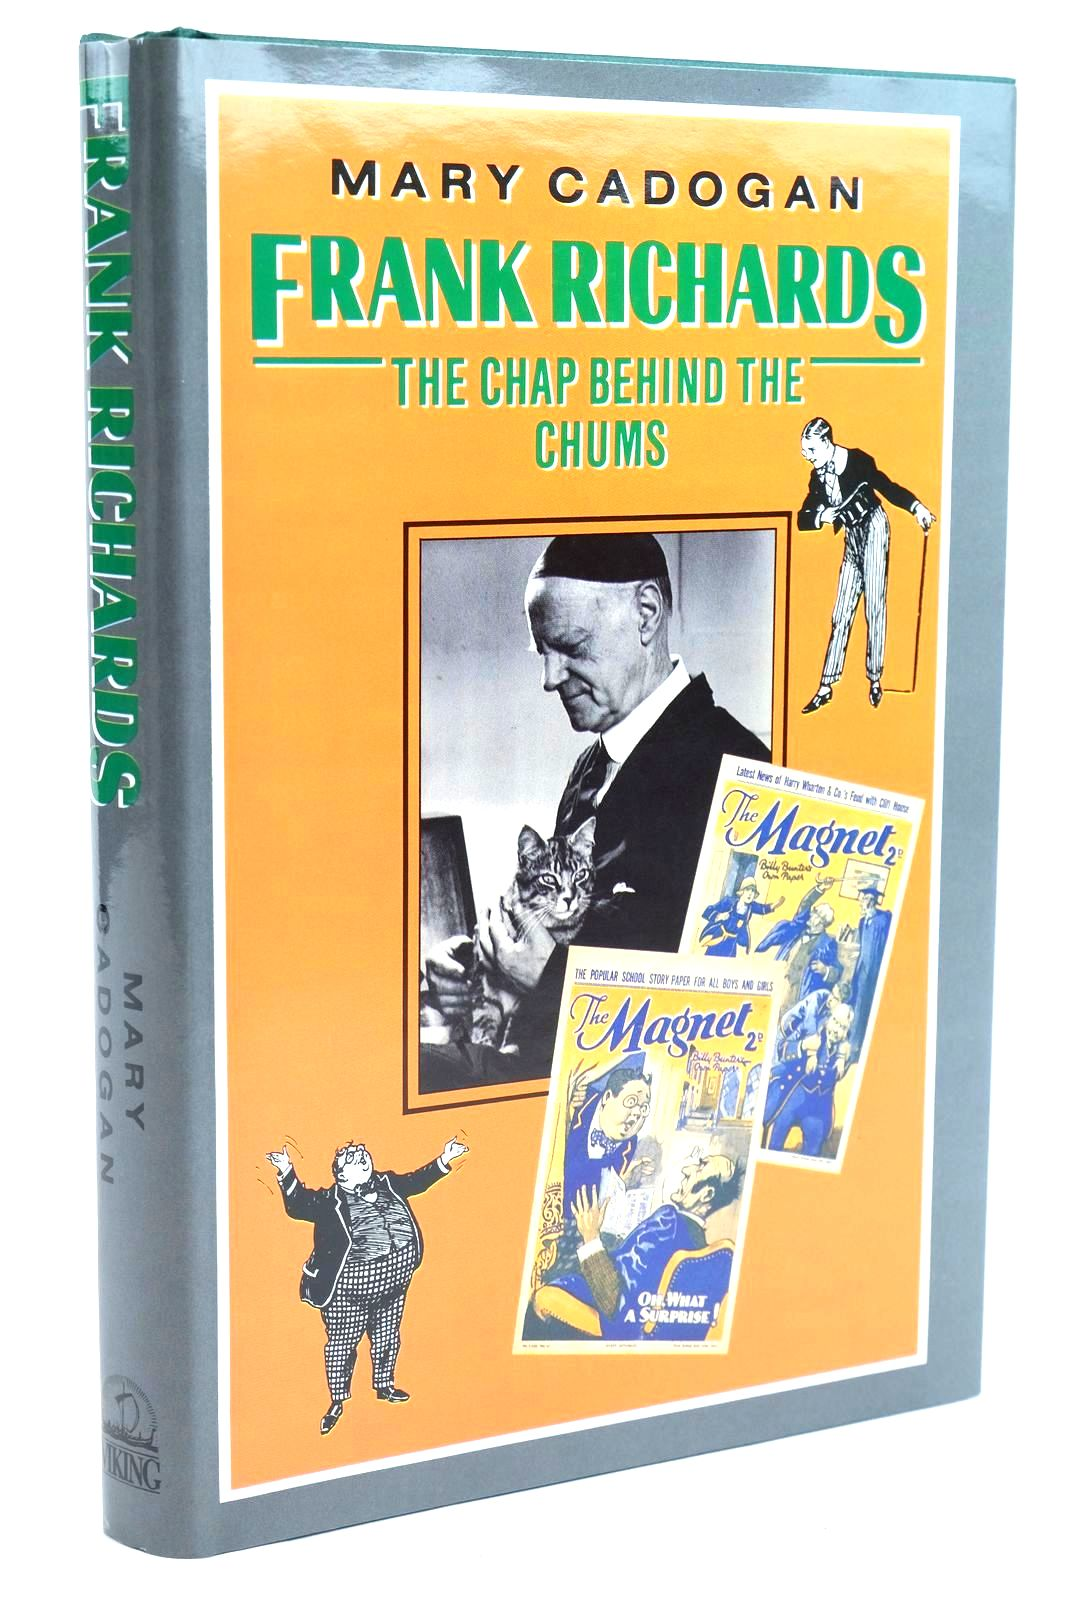 Photo of FRANK RICHARDS - THE CHAP BEHIND THE CHUMS- Stock Number: 1319703